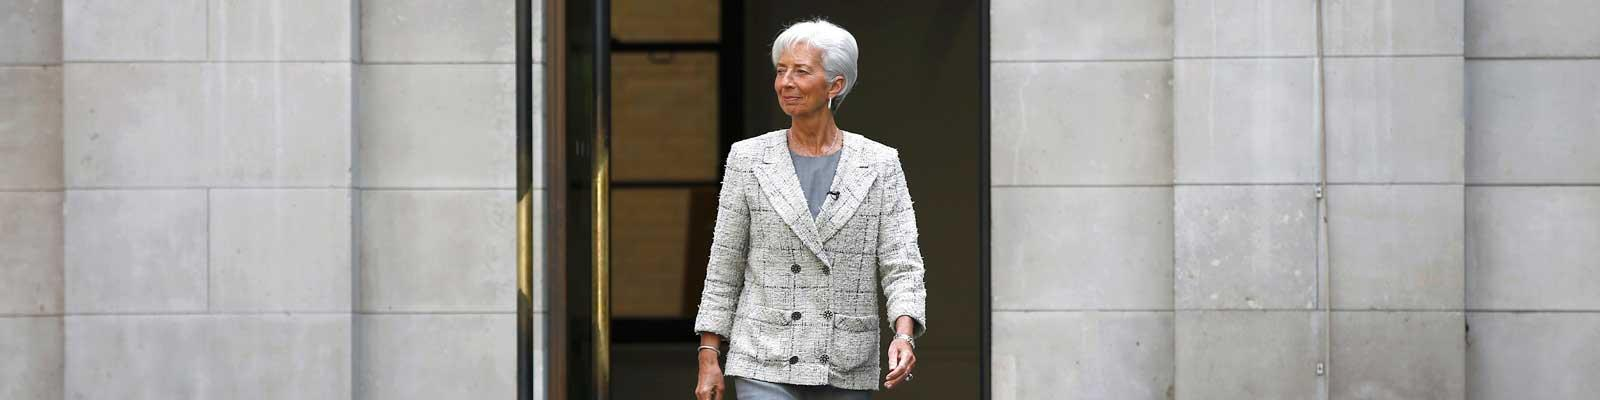 Why Christine Lagarde is a Smart Choice to Head the ECB